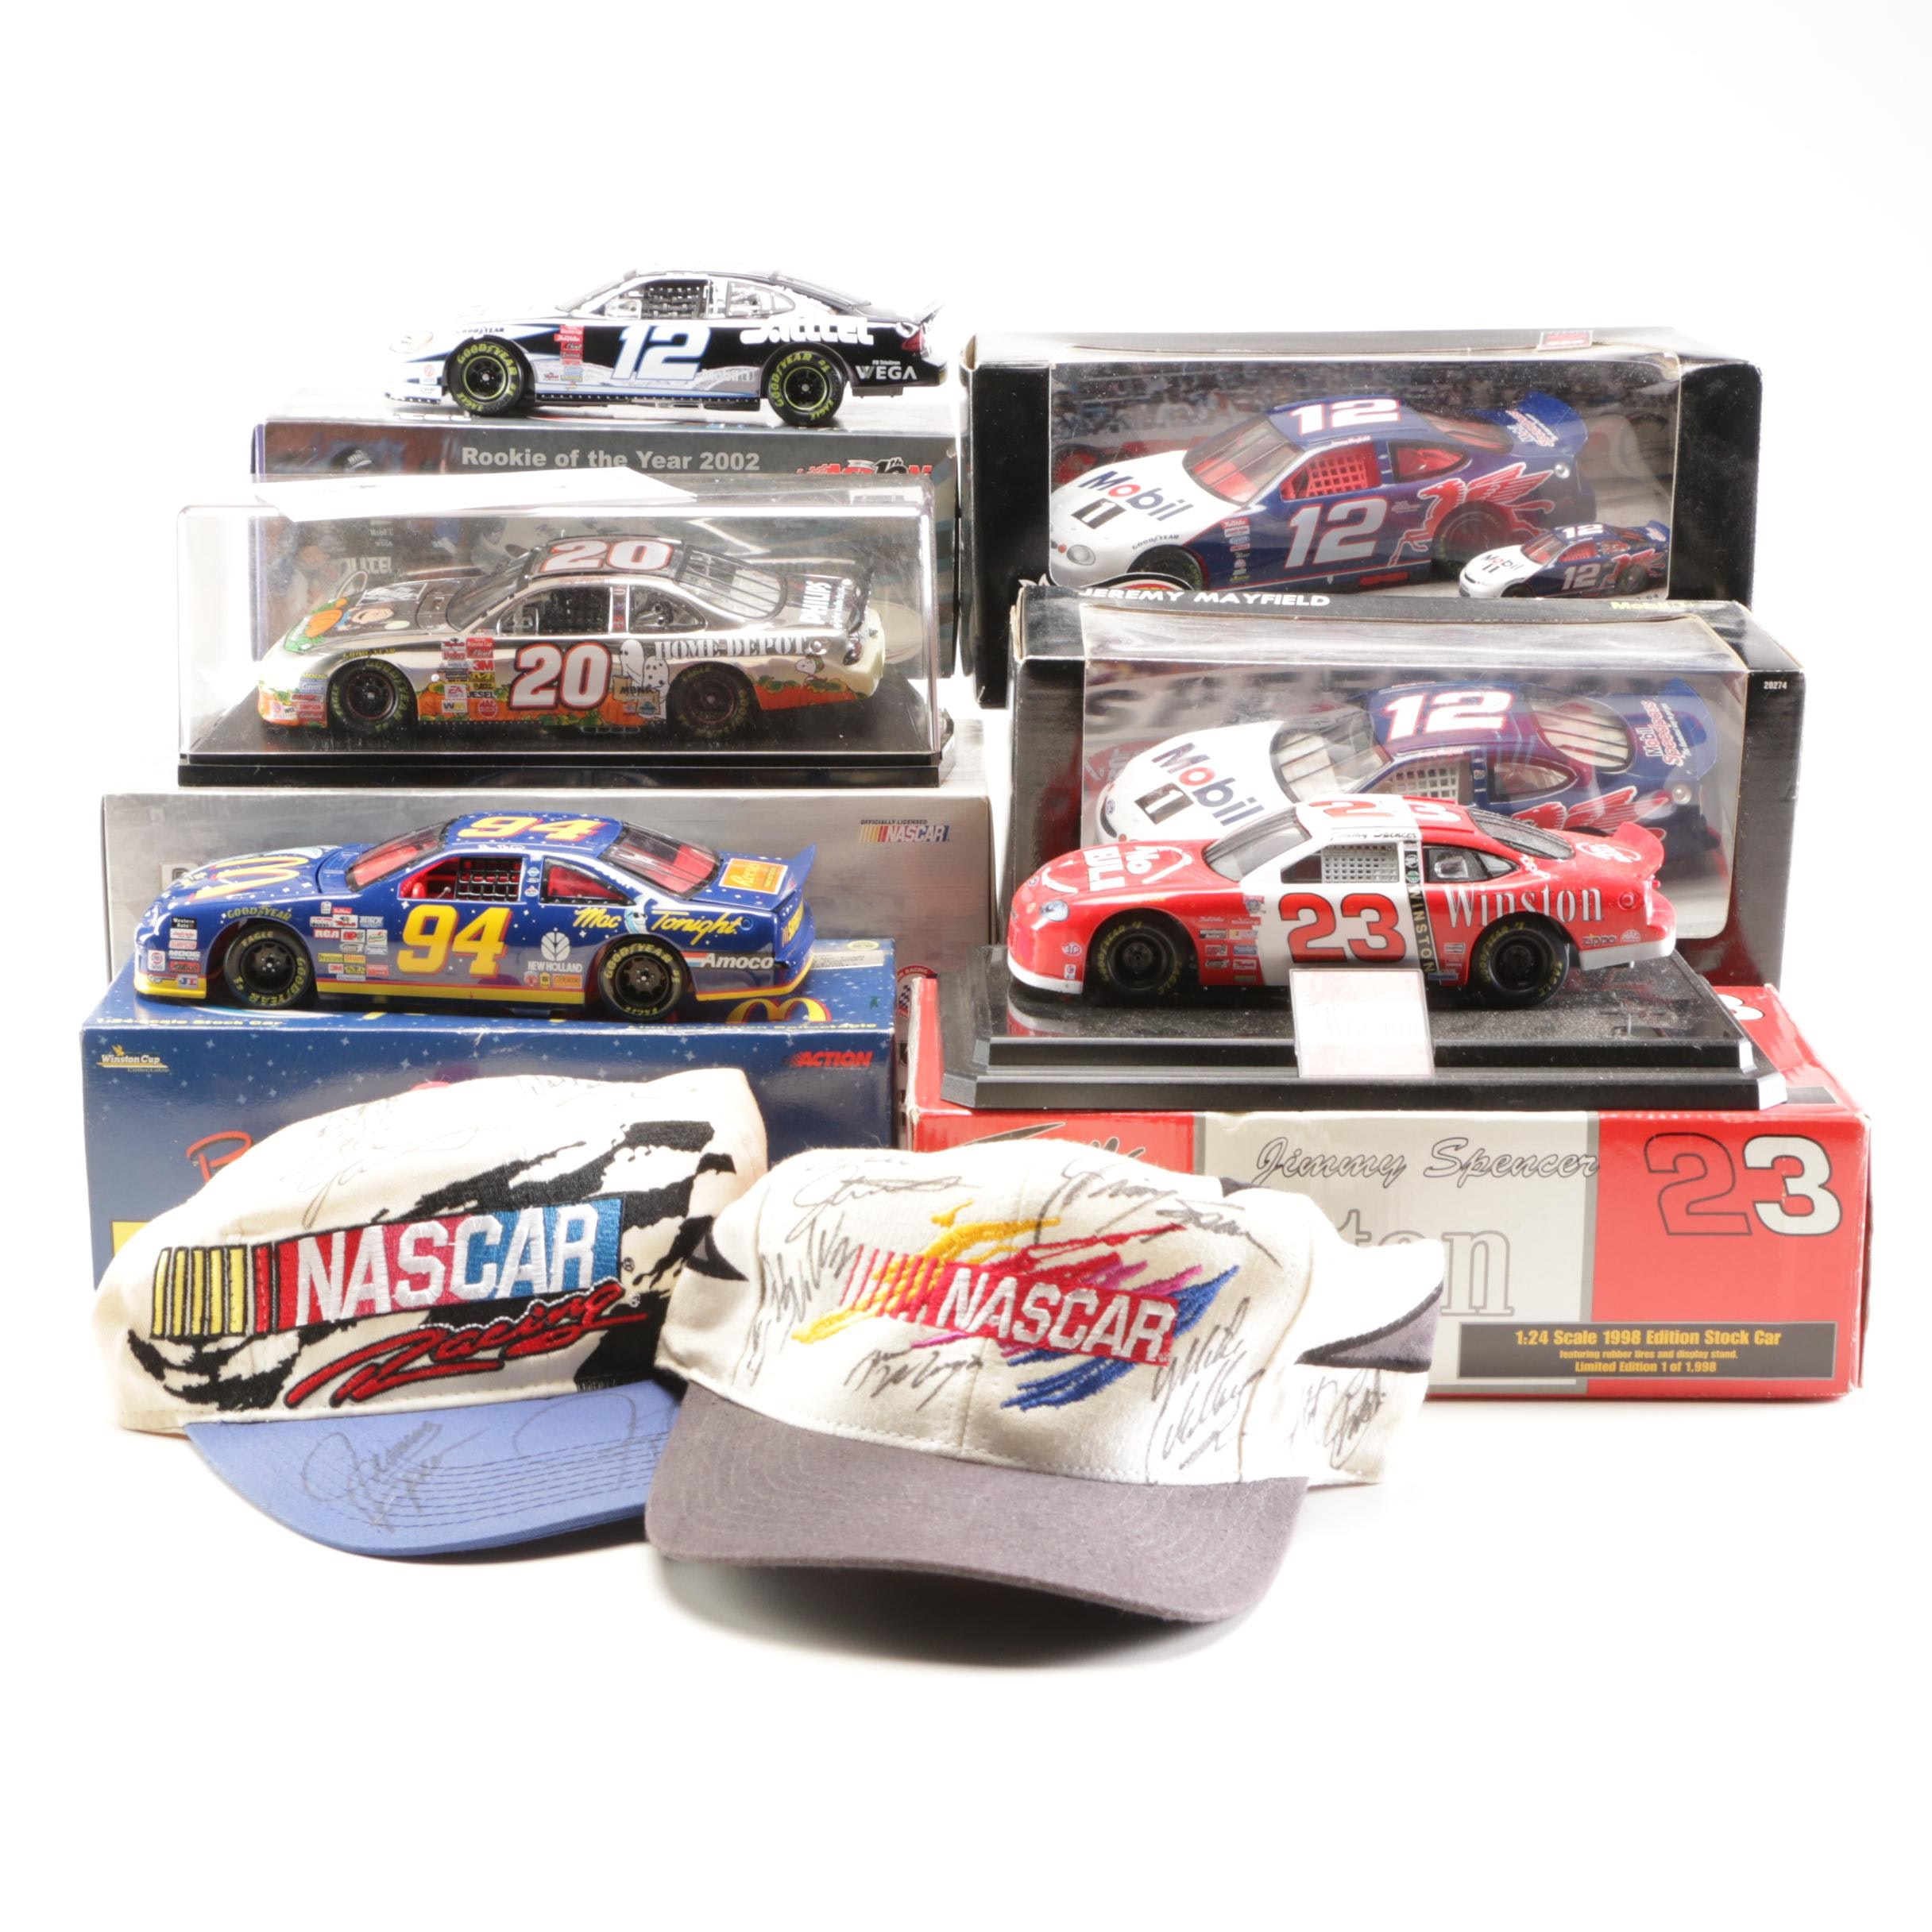 Nascar Collectibles Including Tony Stewart Platinum Series Car and Autographs